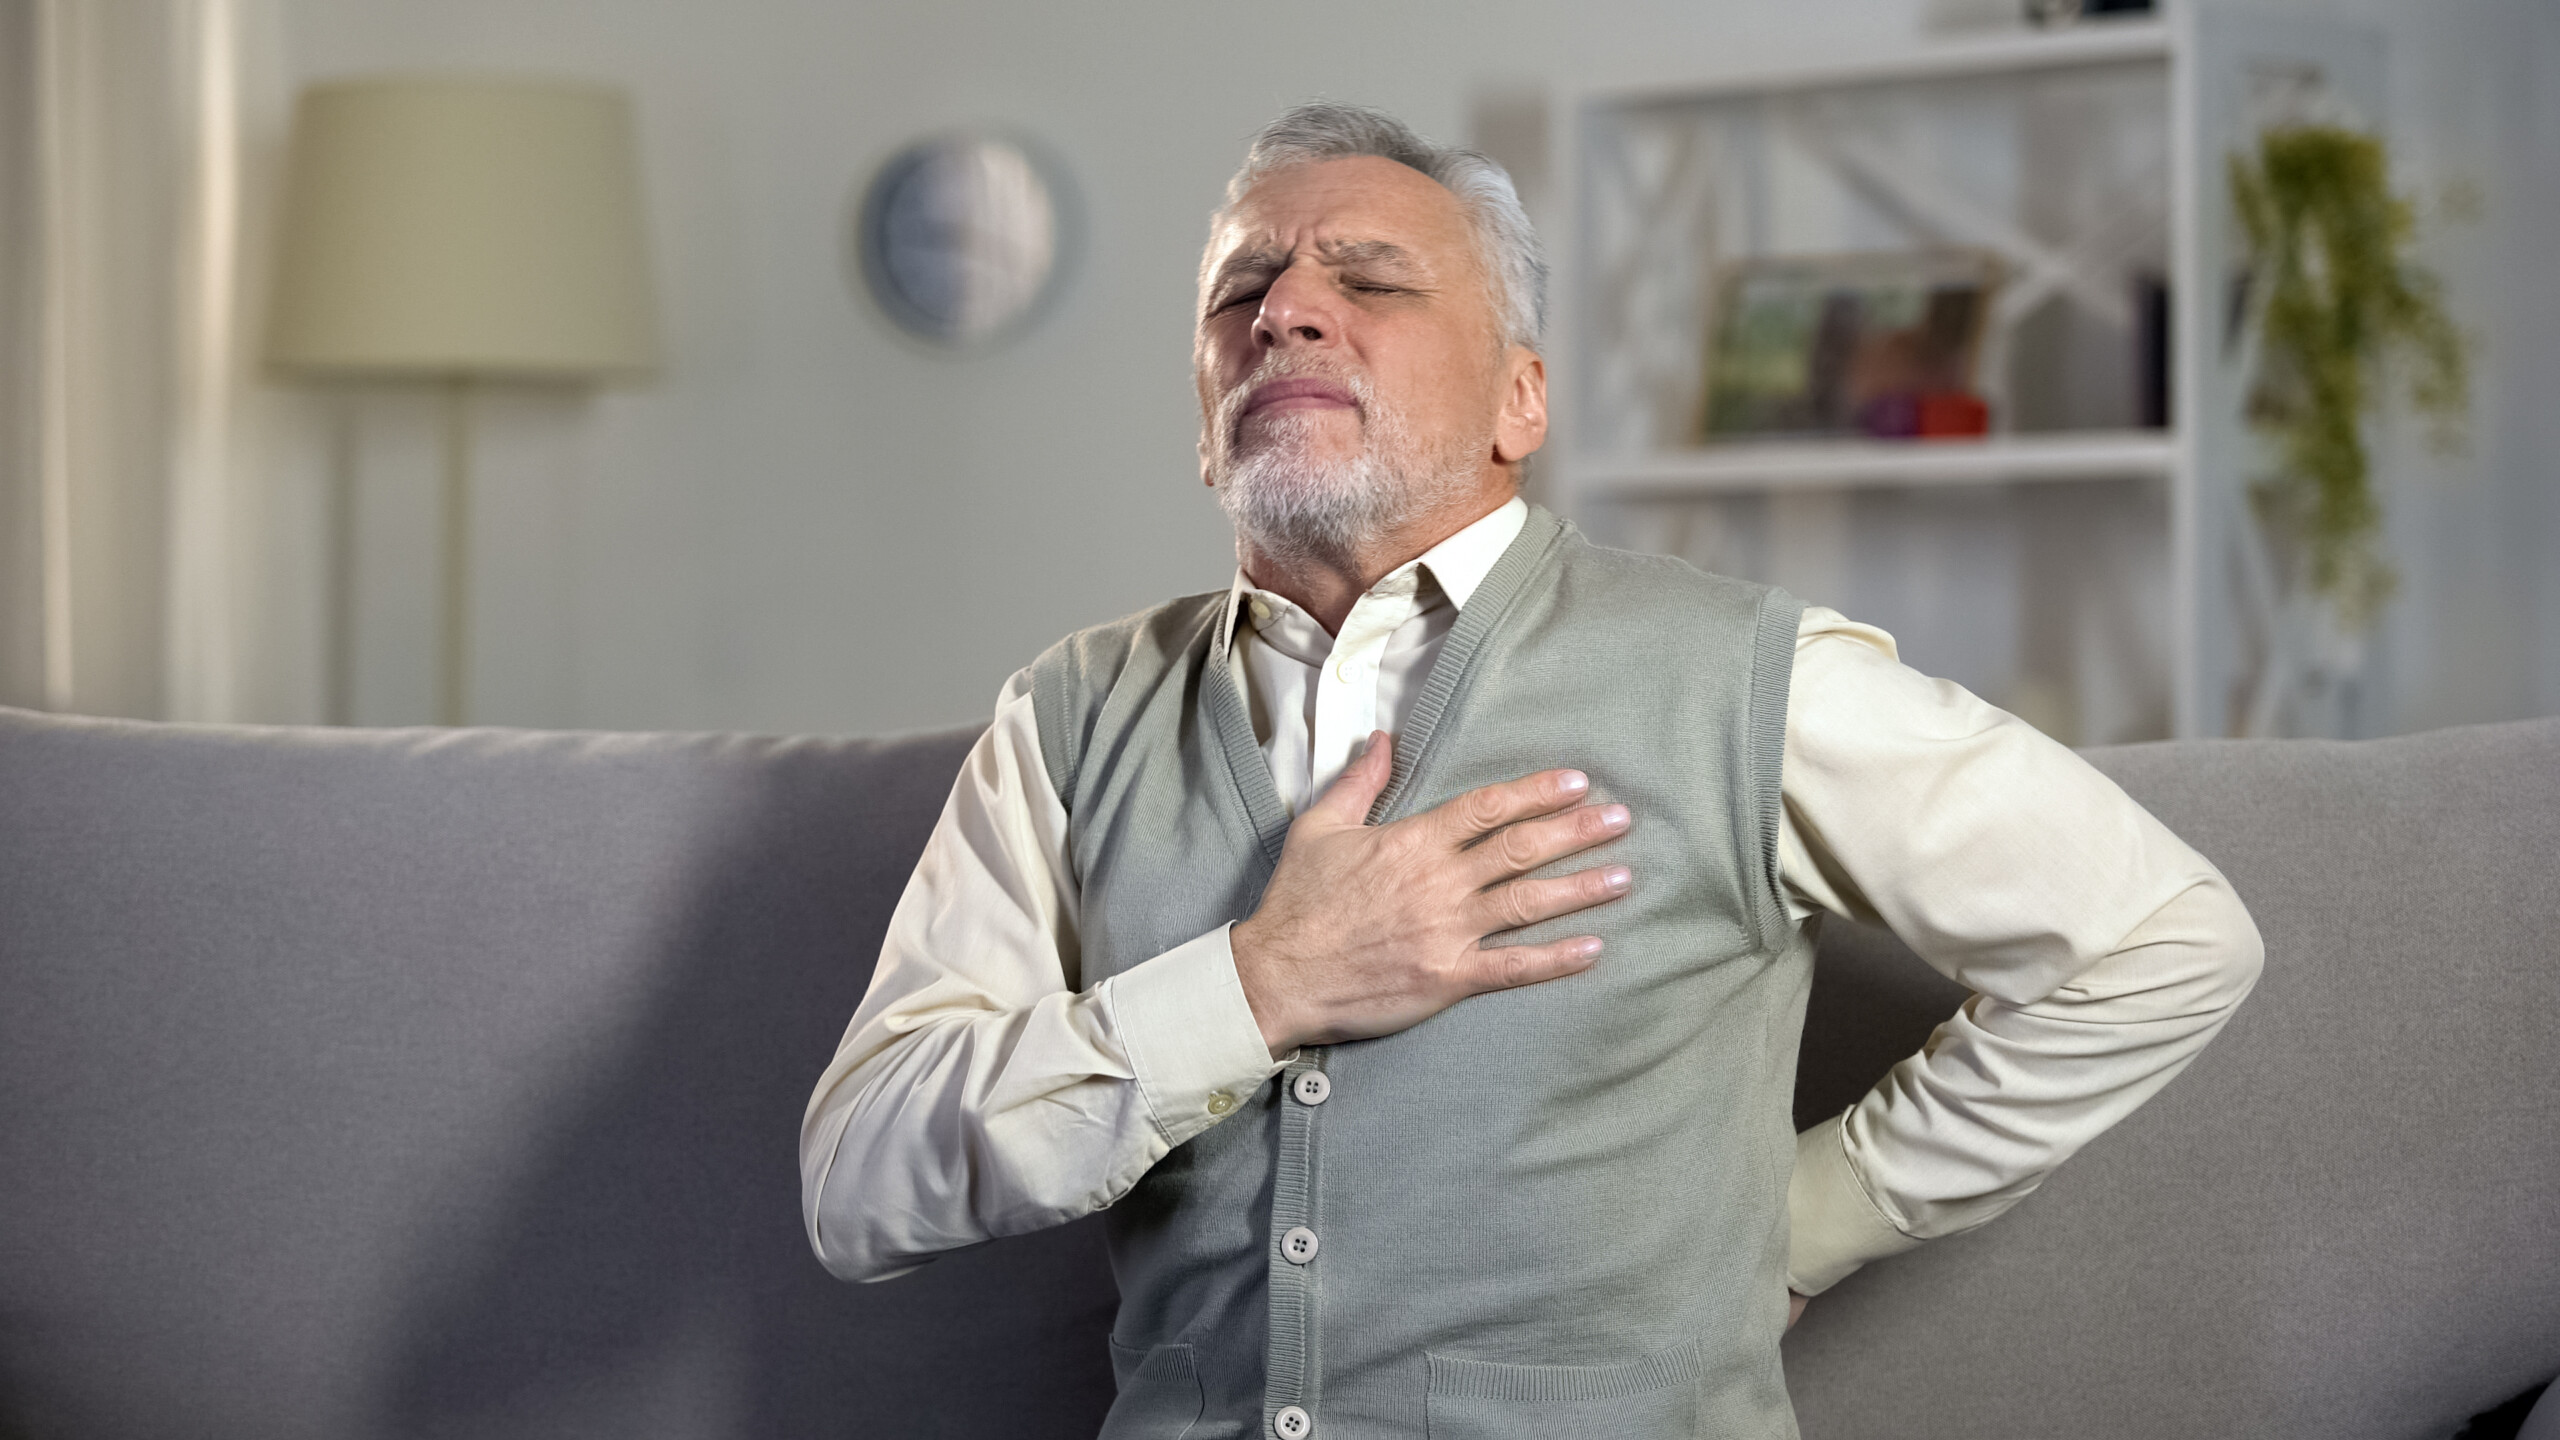 HOW Can a Knee Replacement Lead to a Heart Attack? Mechanisms